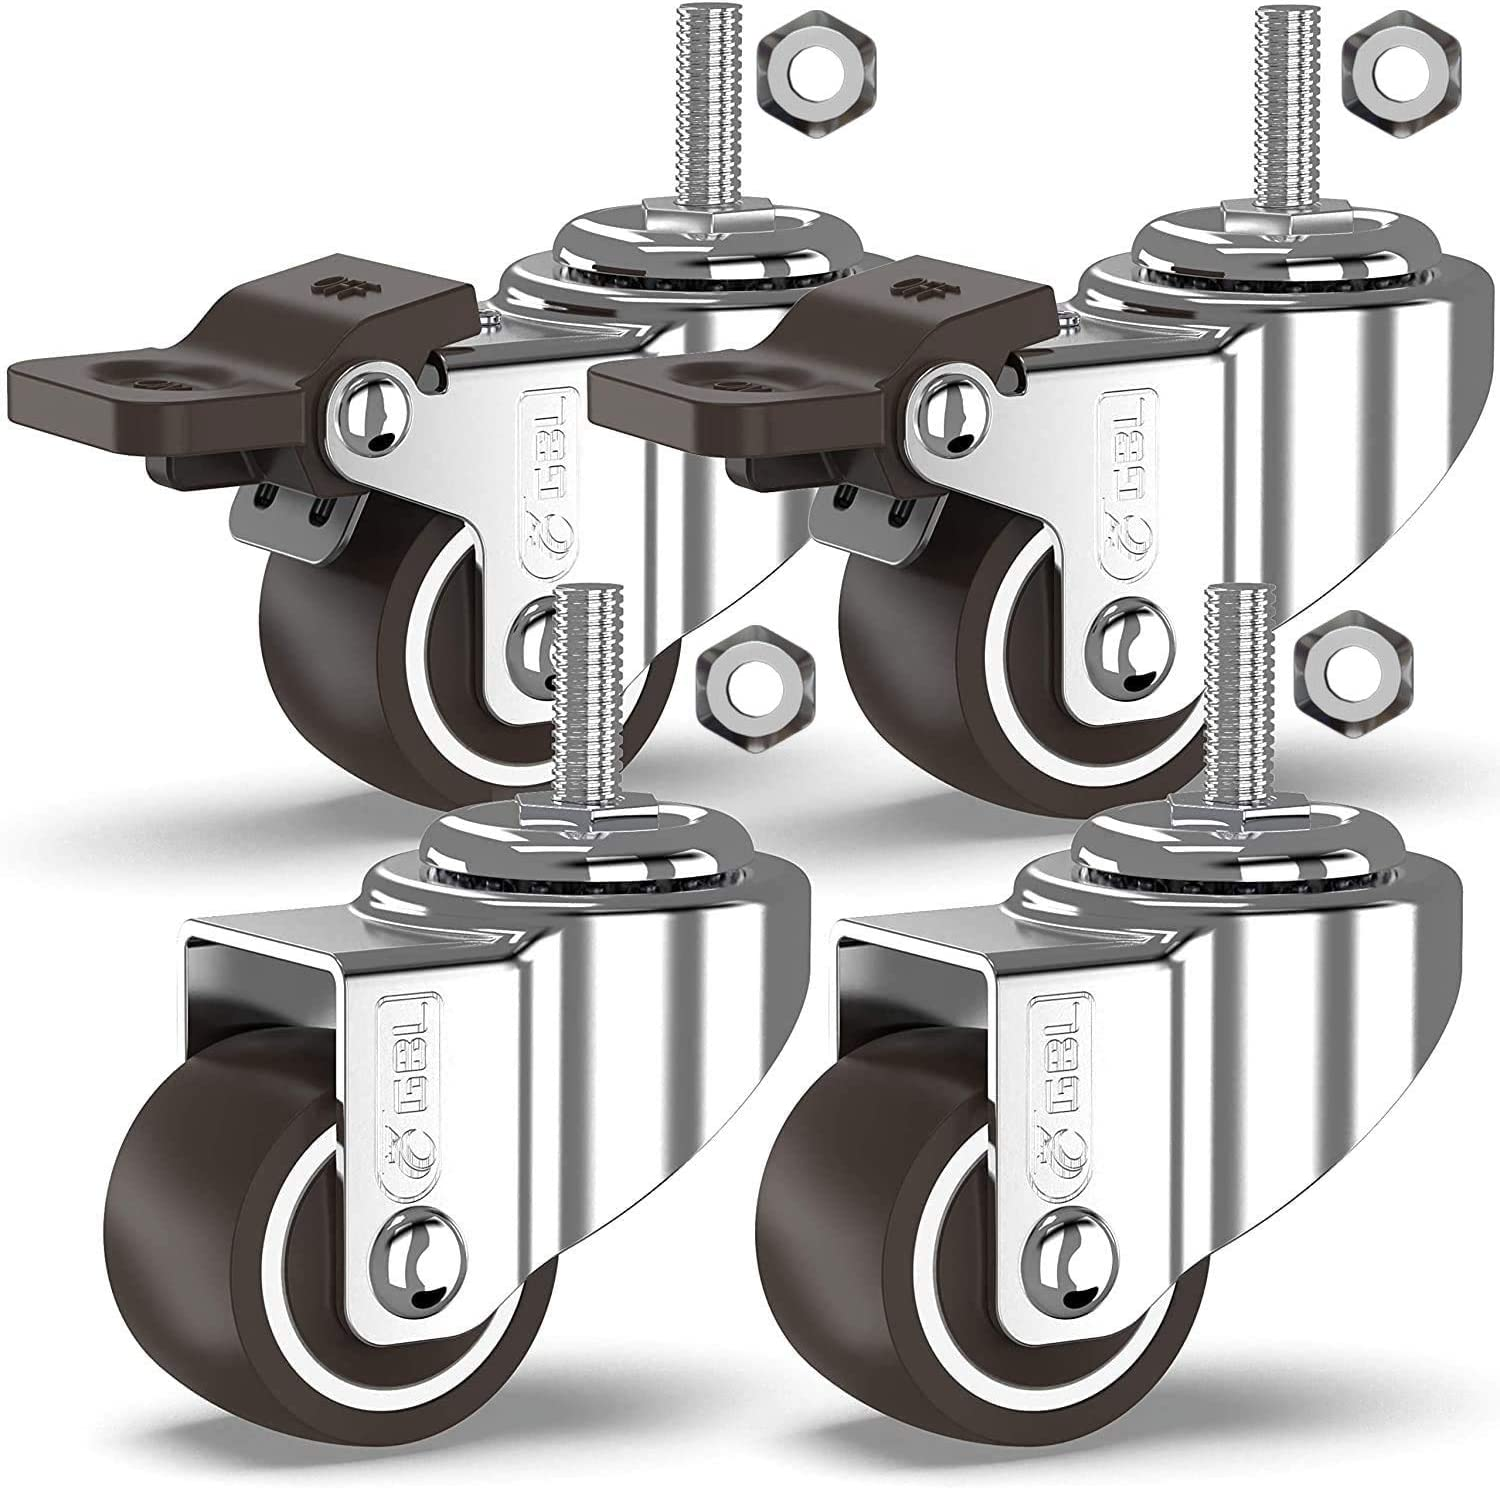 GBL - 1'' Small Caster Wheels + Nuts | Stem Threaded M8x20mm 90Lbs | Low Profile | Dolly Wheels for Furniture Trolley Brake Hardwood Floors